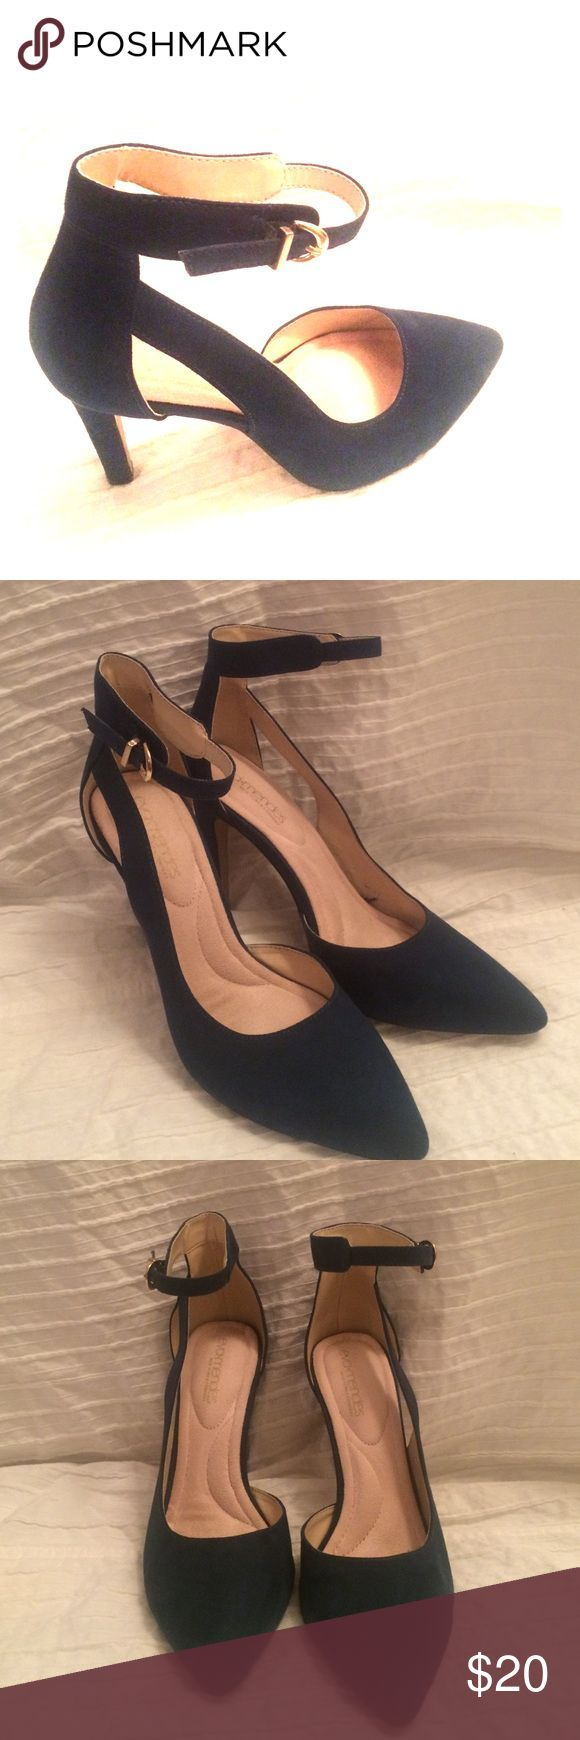 Heels Beautiful high heel ankle strap shoes. Faux suede. Like new. eva mendes  Shoes Heels